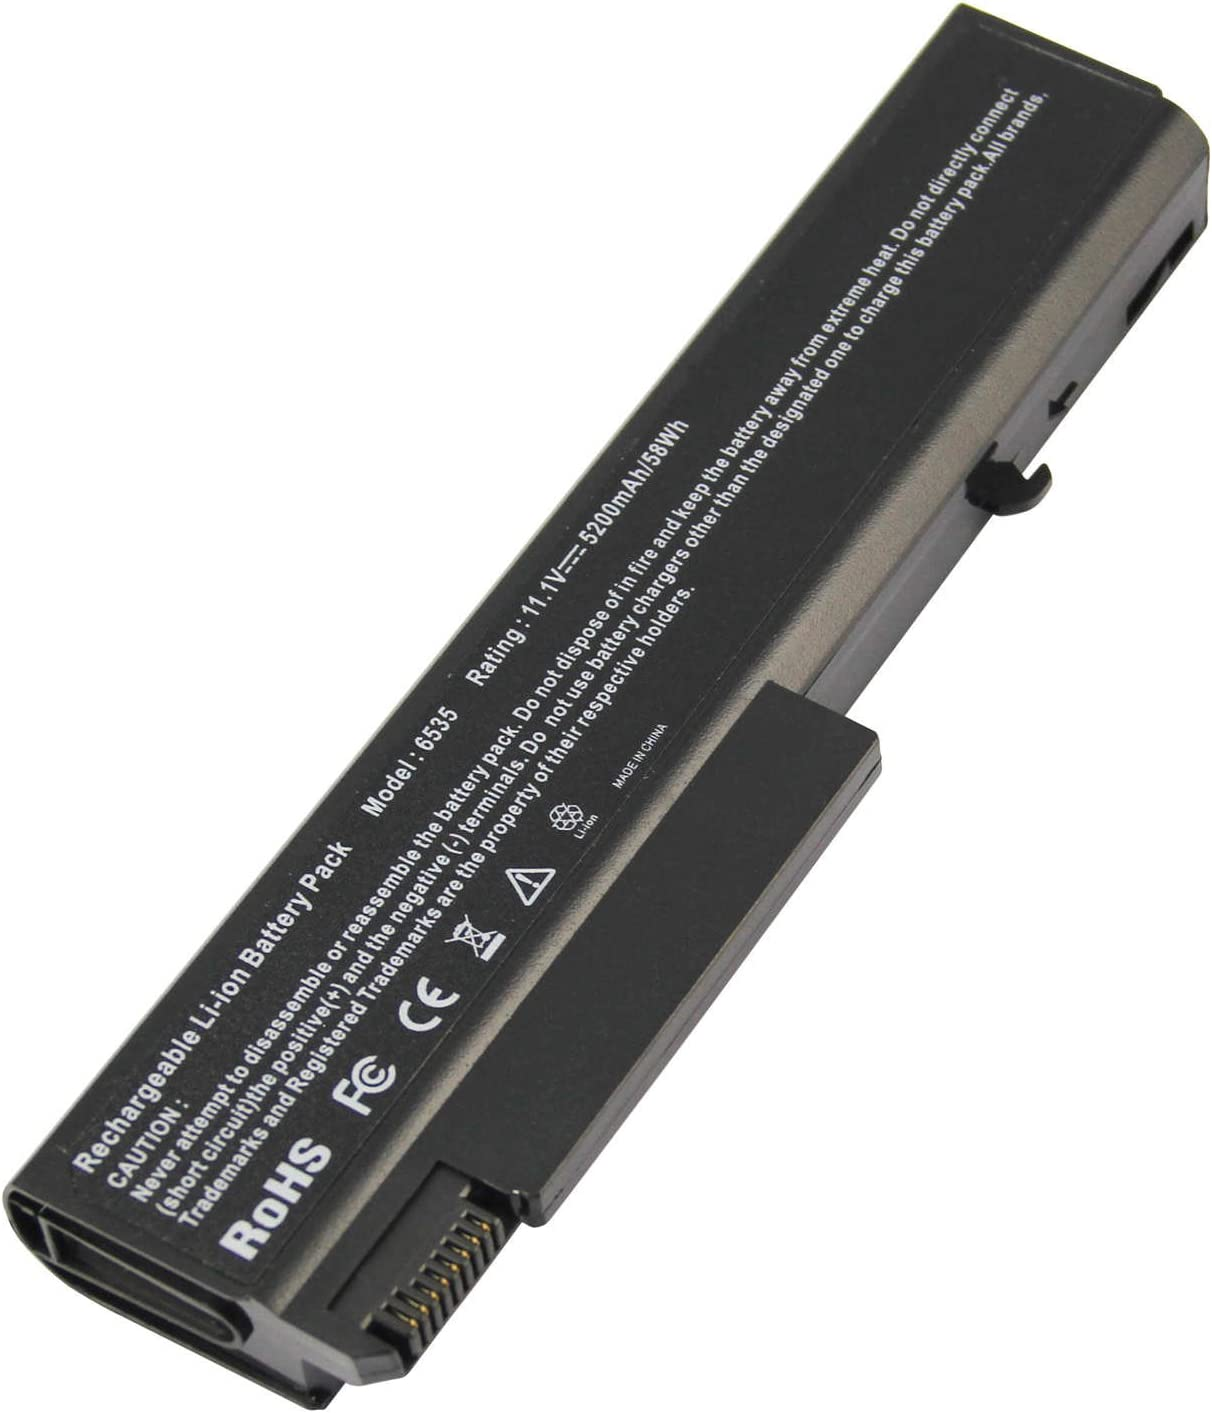 ARyee 5200mAh 11.1V Laptop Battery Compatible with HP EliteBook 8440P 6930P 6530B 6730B 6550B ProBook 6455B 6555B 486296-001 482962-001 KU531AA